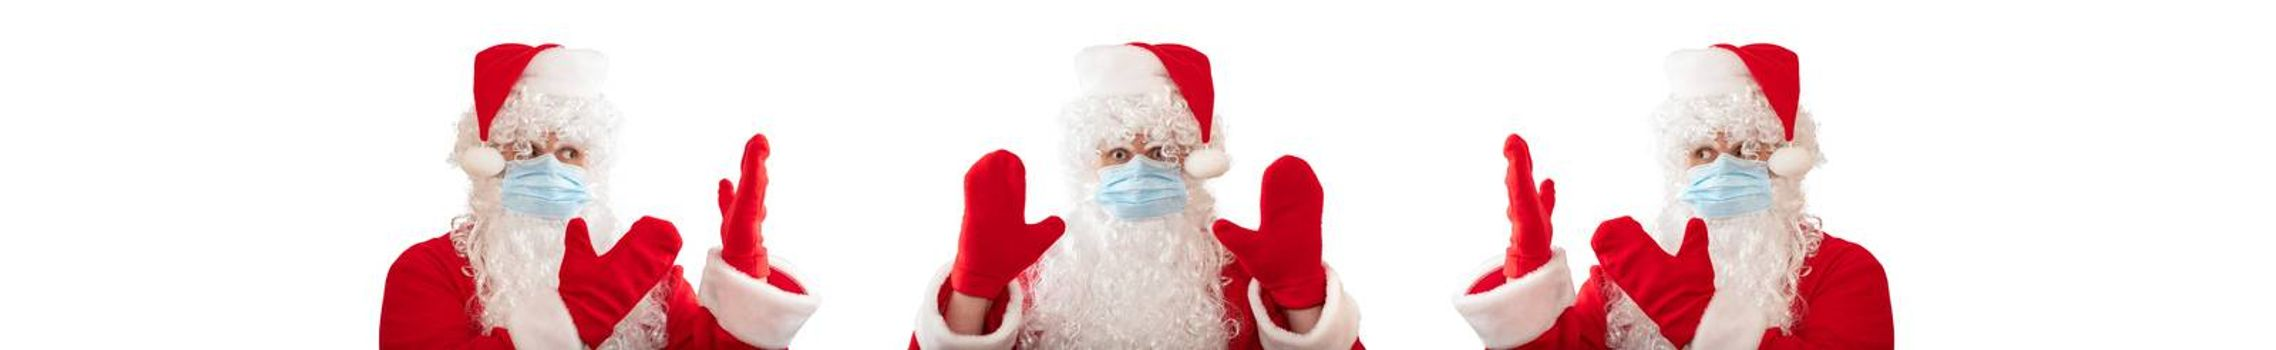 Santa Claus wearing a medical mask, having his both hands up, eyes wide open in warning gesture. Two other Santa Clauses pointing at him. Isolated on white background. Banner size, copy space.